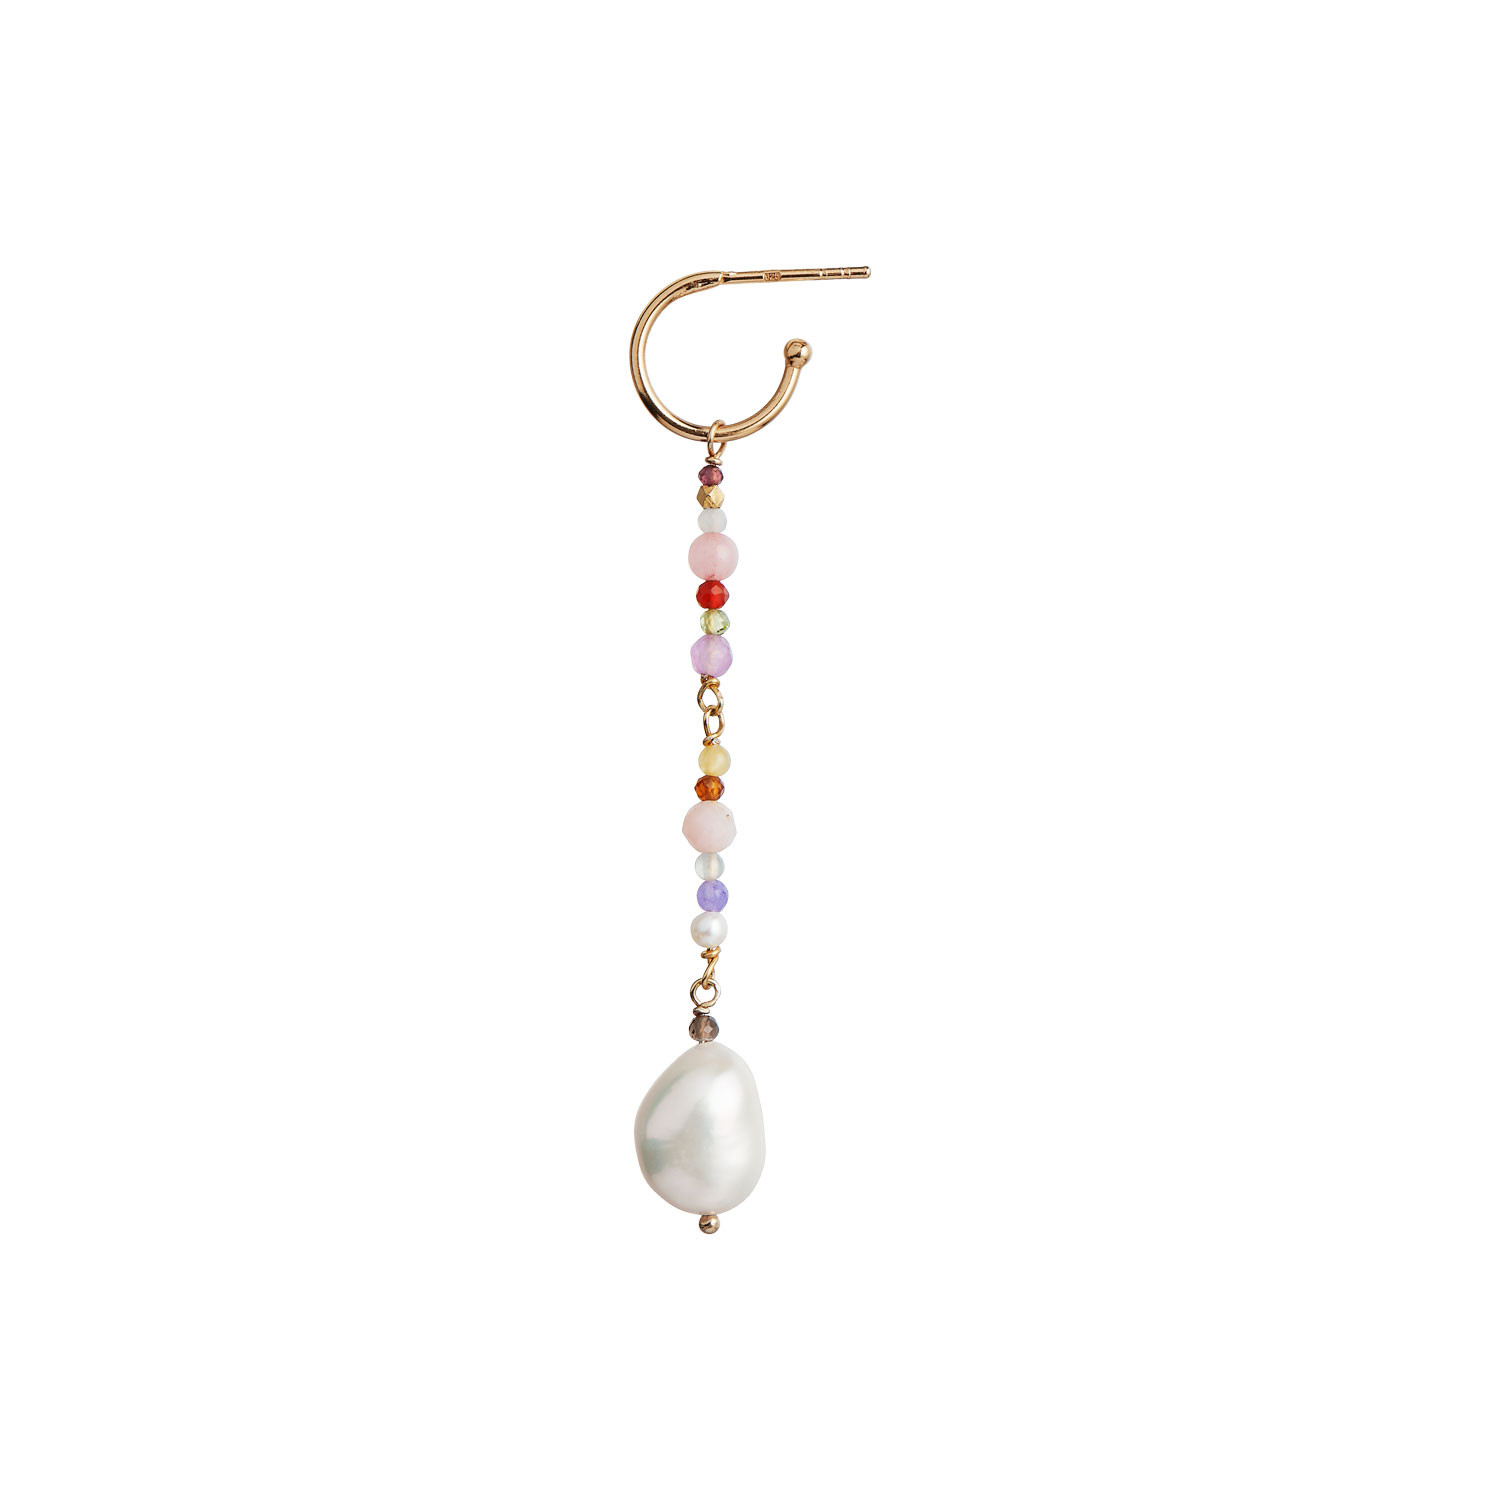 Dangling Baroque Pearl Earring with Stones - Pink Mix